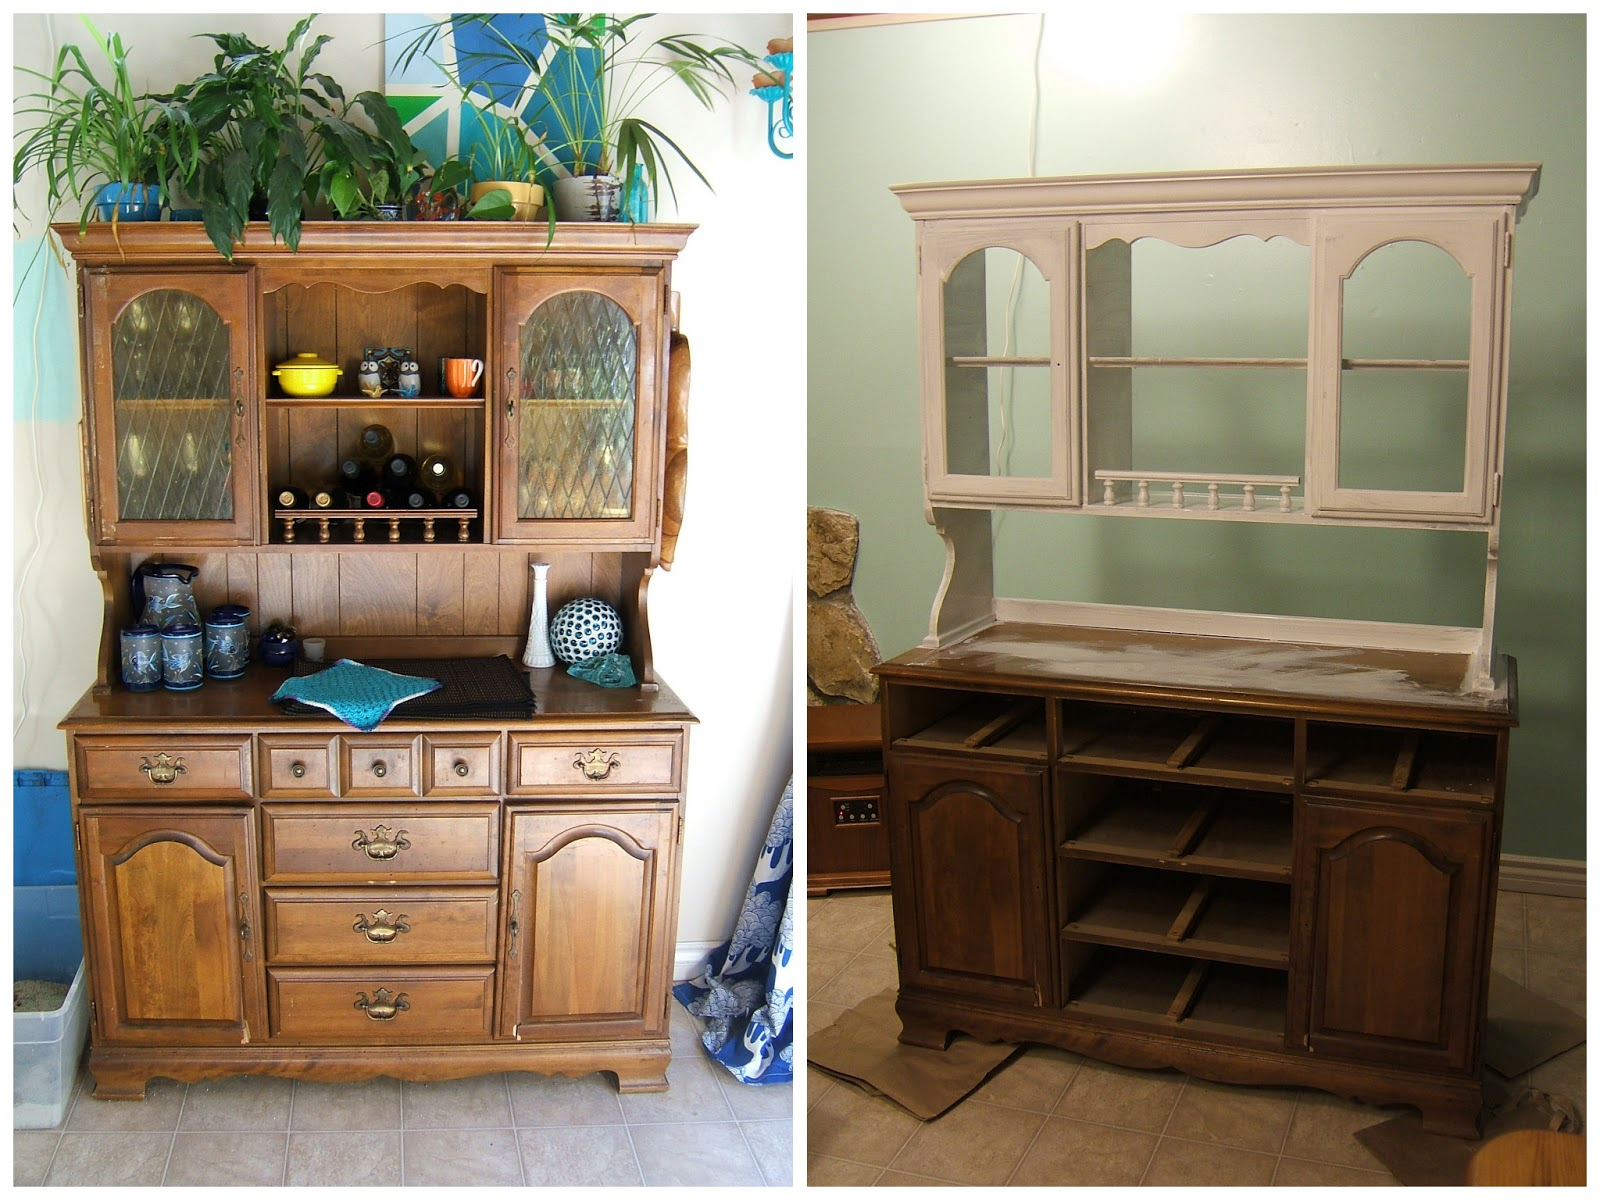 Source: Small Kitchen Hutch Painted